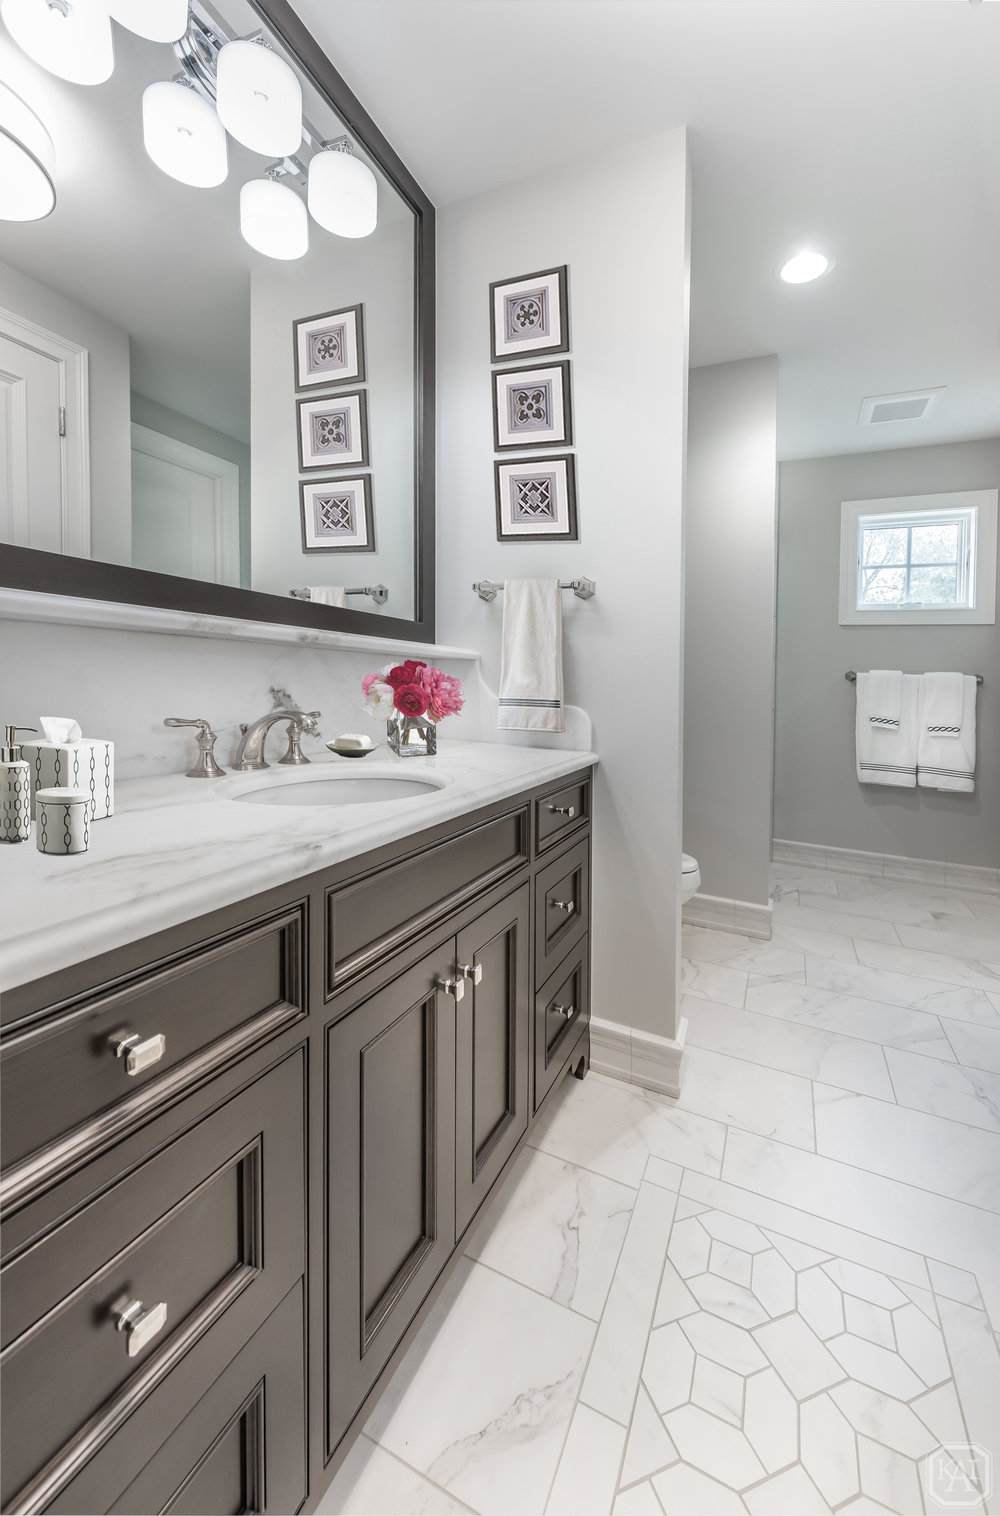 ZITELLA GUEST BATHROOM VANITY AND ARTWORK AND TILE FLOORING_FINAL_EDIT.jpg